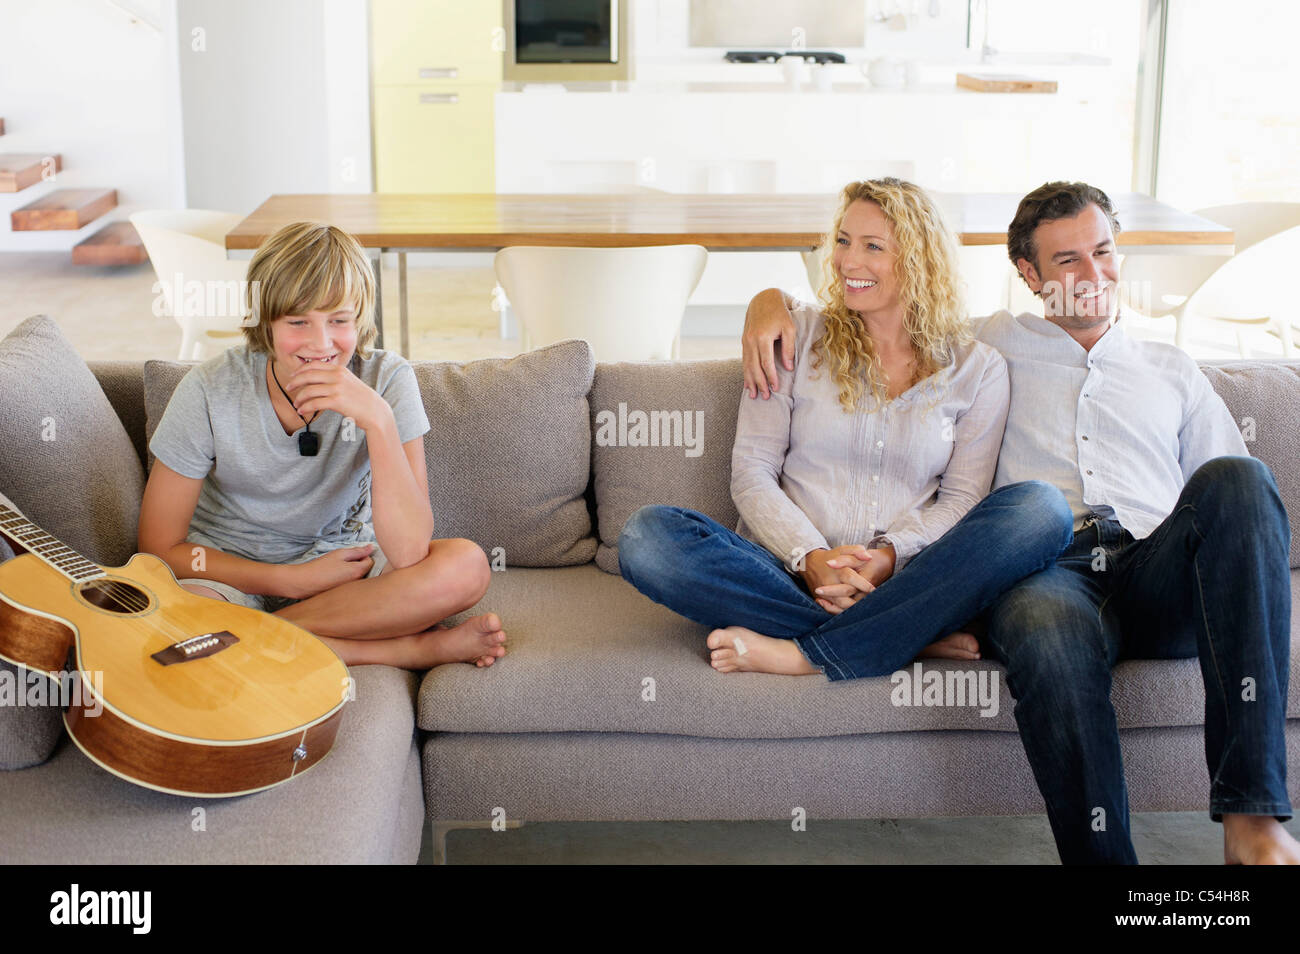 Family sitting on a couch and smiling Banque D'Images